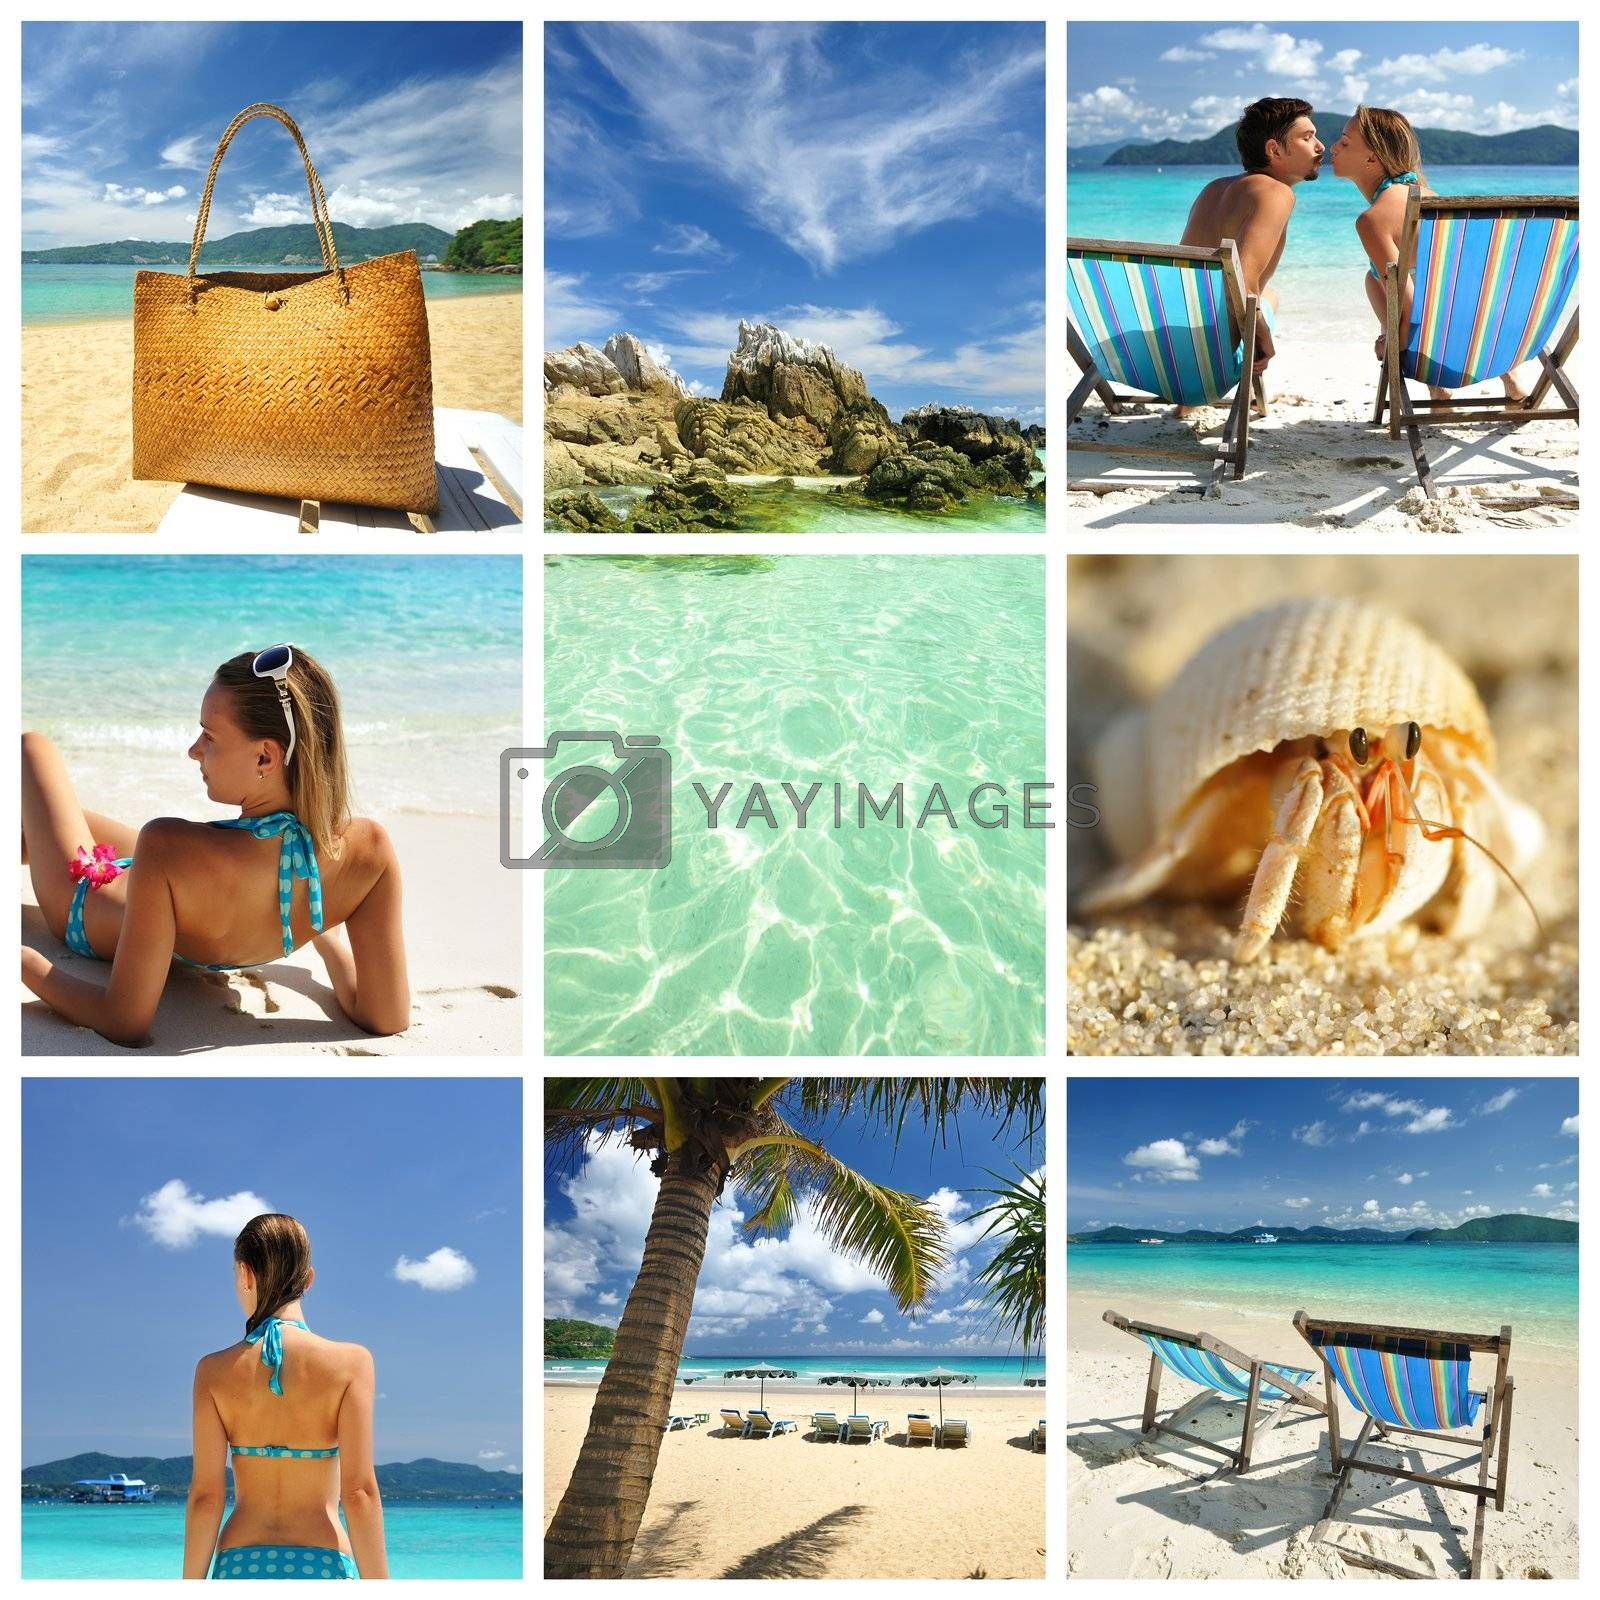 Resort collage by haveseen